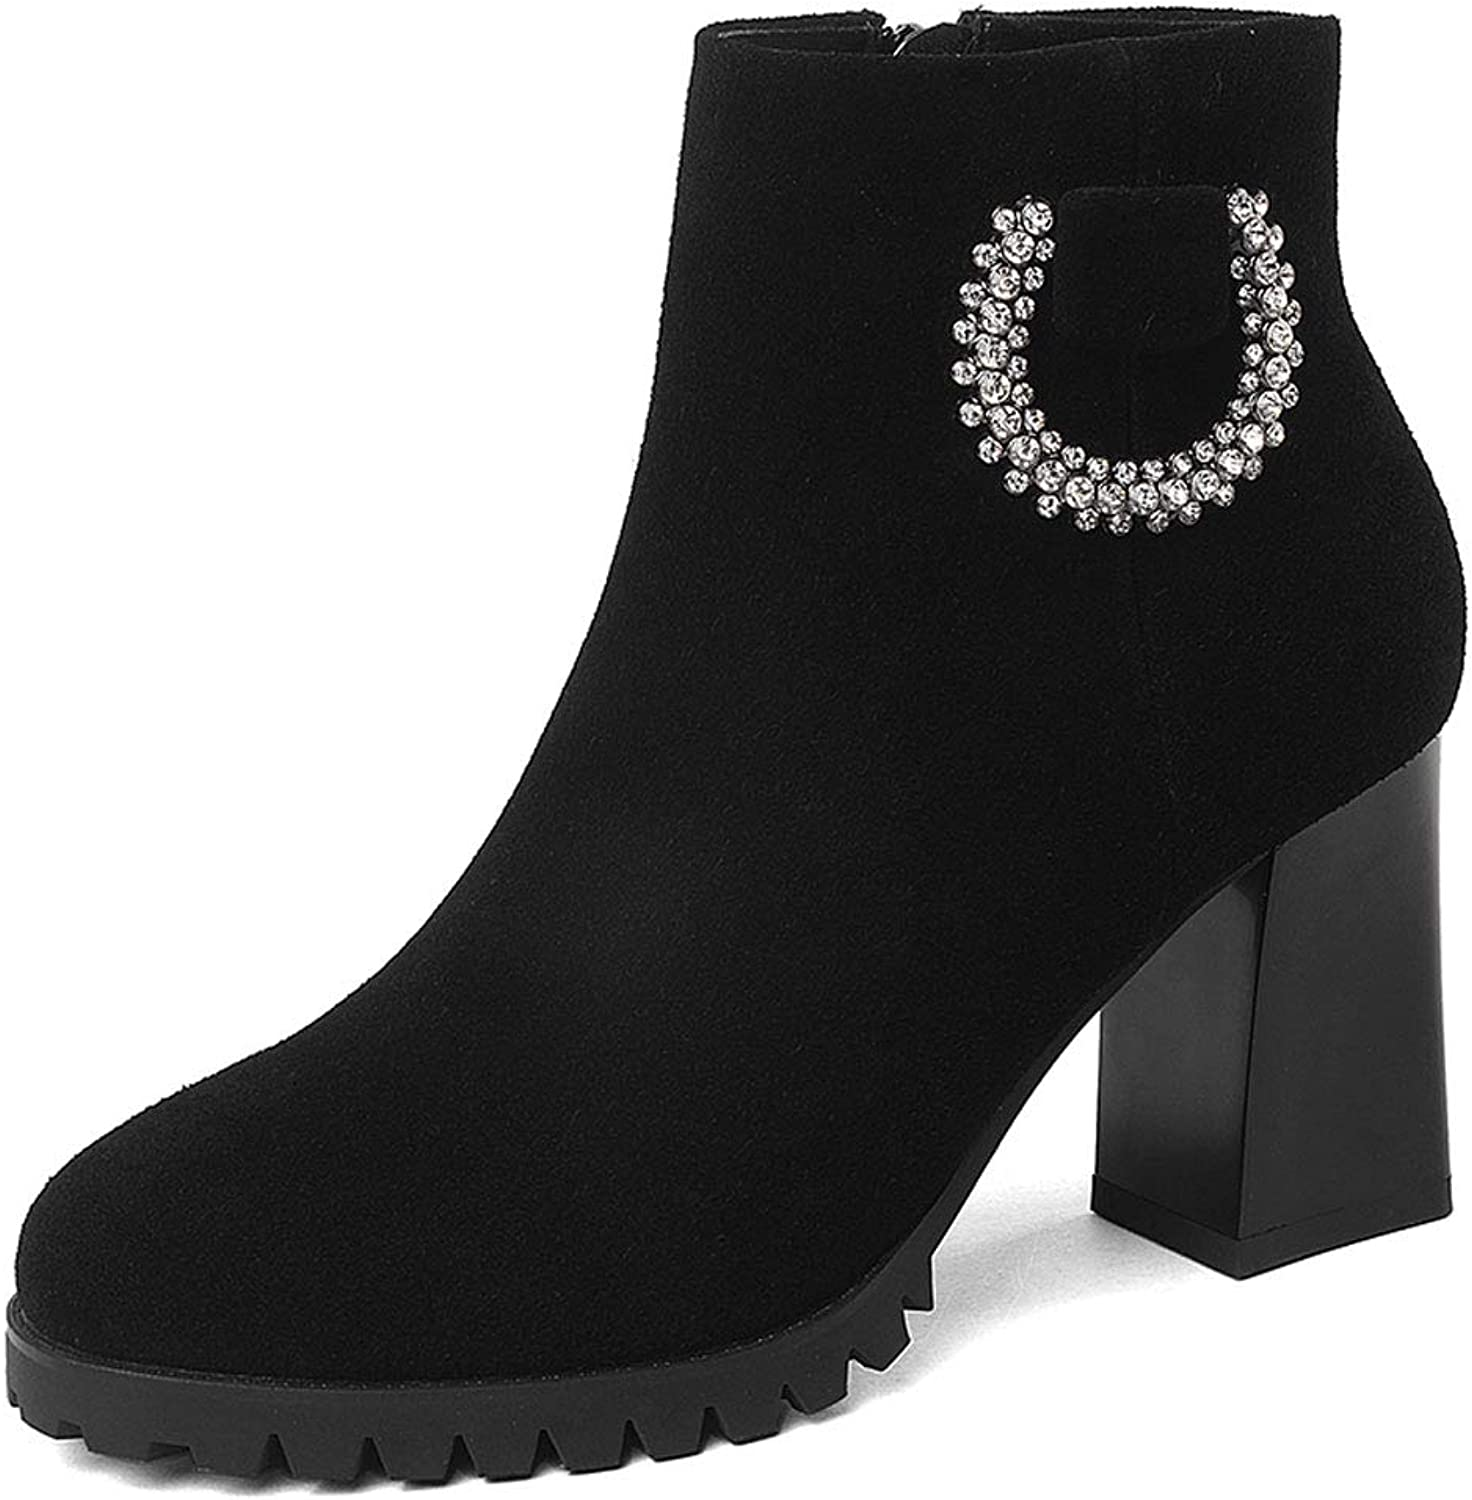 Cowhide Round Head Thick with Short Boots Female Tide Leather Rhinestones Martin Boots Fashion Warm Plus Velvet Large Size Short Tube Women's Boots